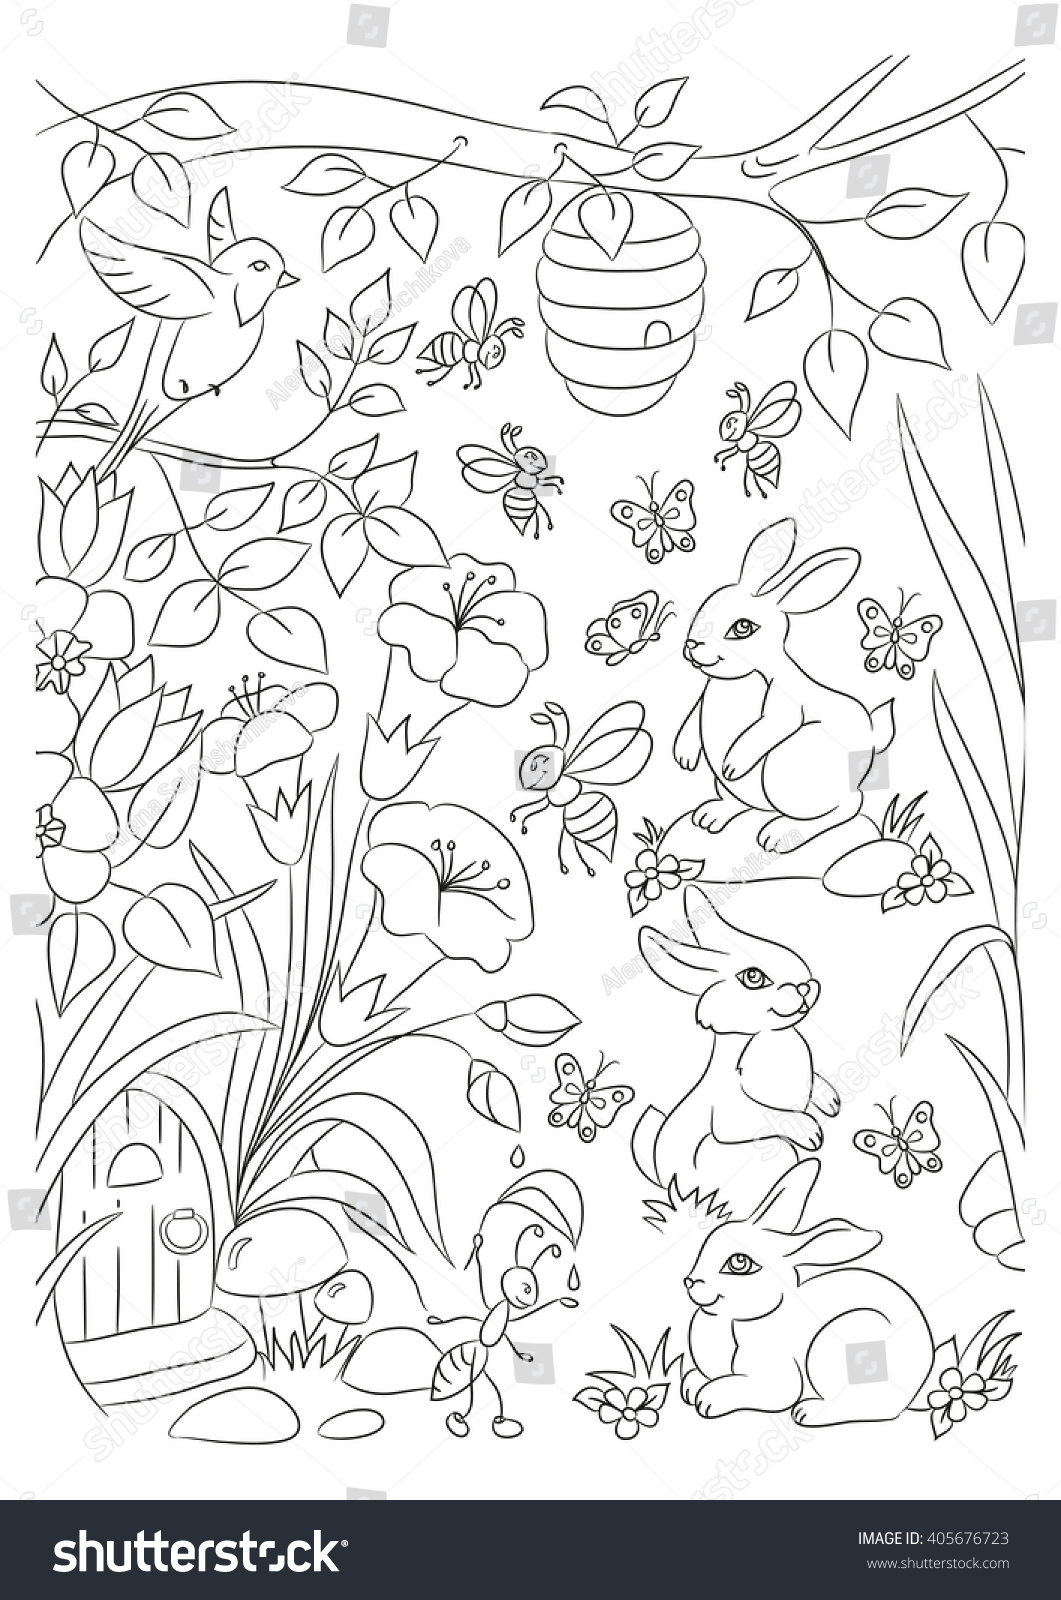 28 Bunch Ideas Of Bison Coloring Pages To Print For Template Bison Coloring Pages